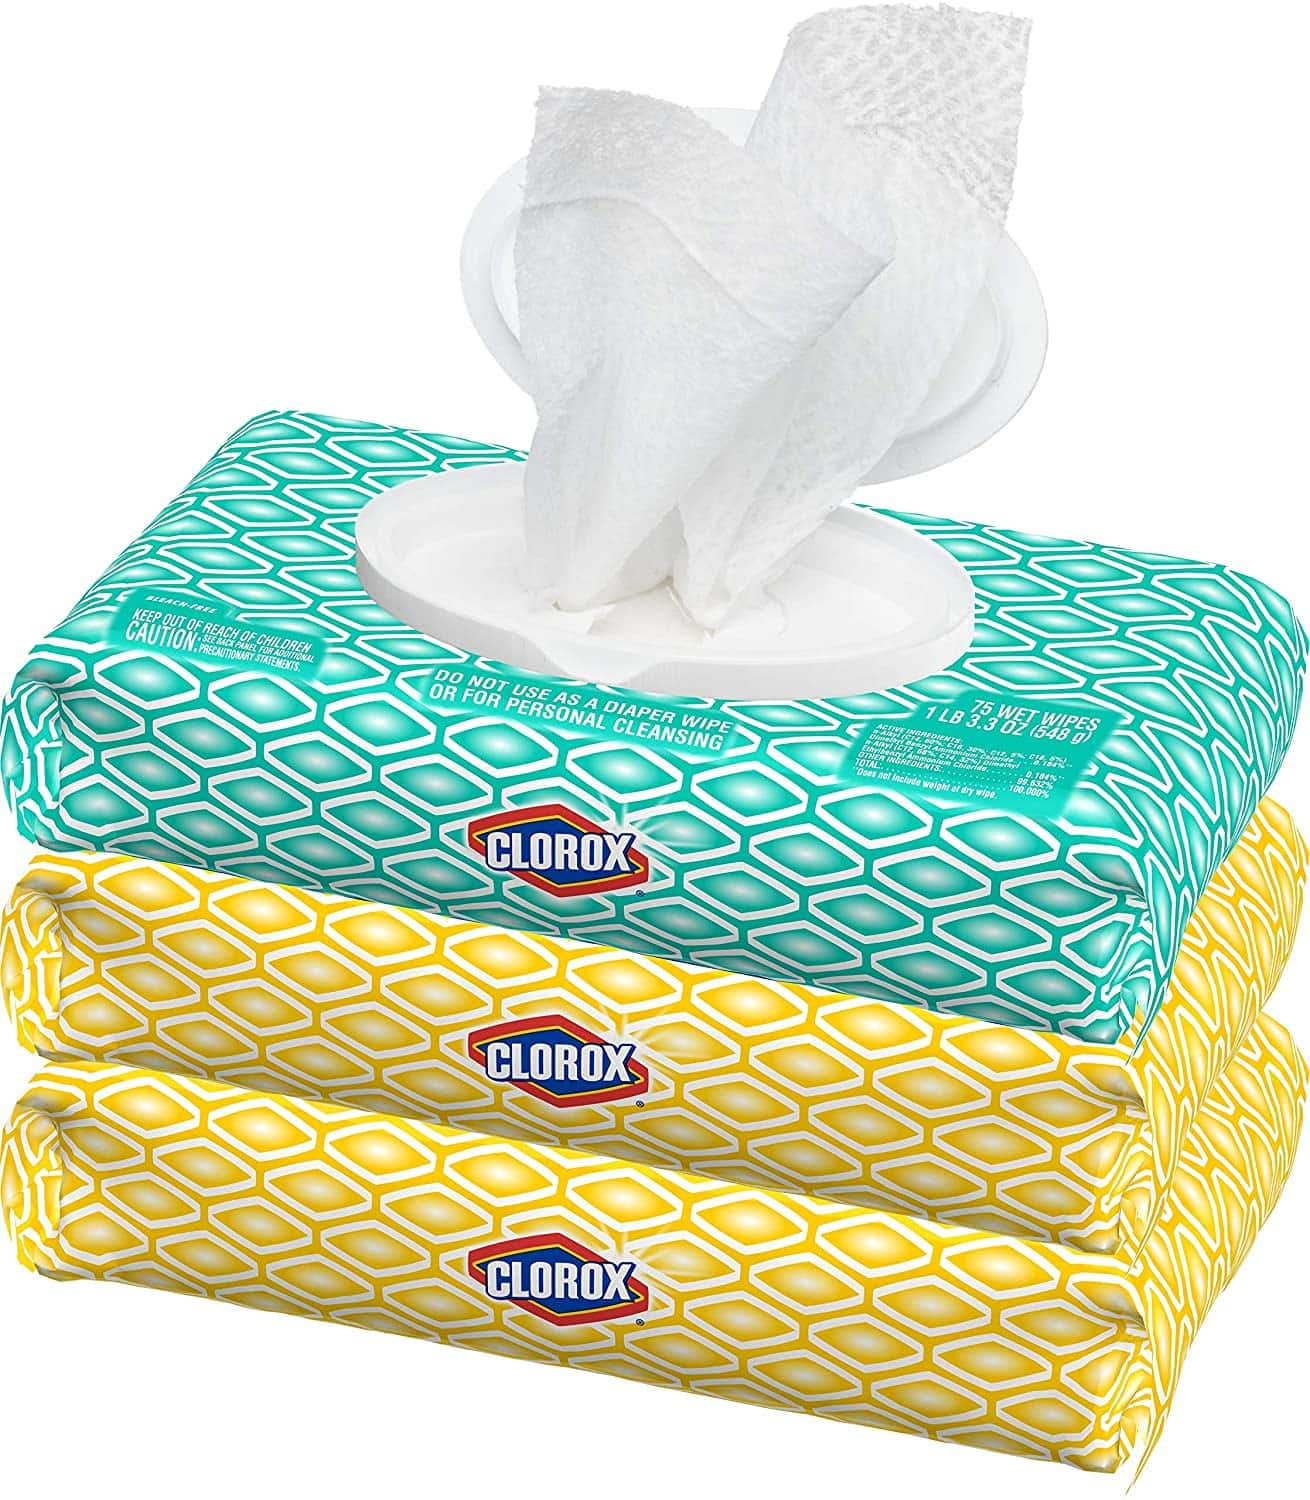 Clorox Disinfecting Wipes 3 Pack IN STOCK NOV 12 $11.97